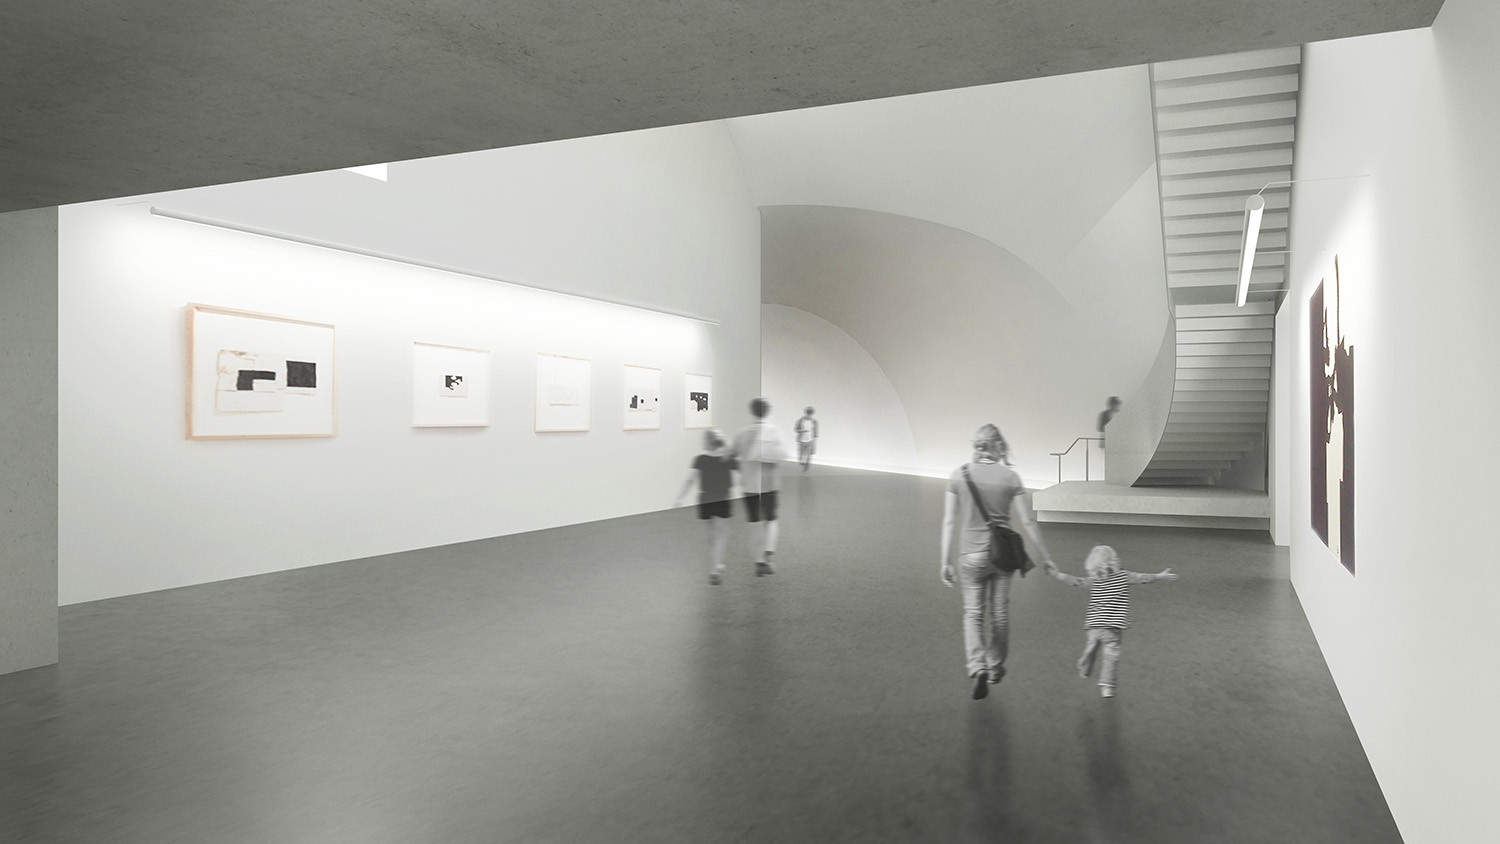 https://s3.us-east-2.amazonaws.com/steven-holl/uploads/projects/project-images/StevenHollArchitects_Glassell_galleryview_WH.jpg